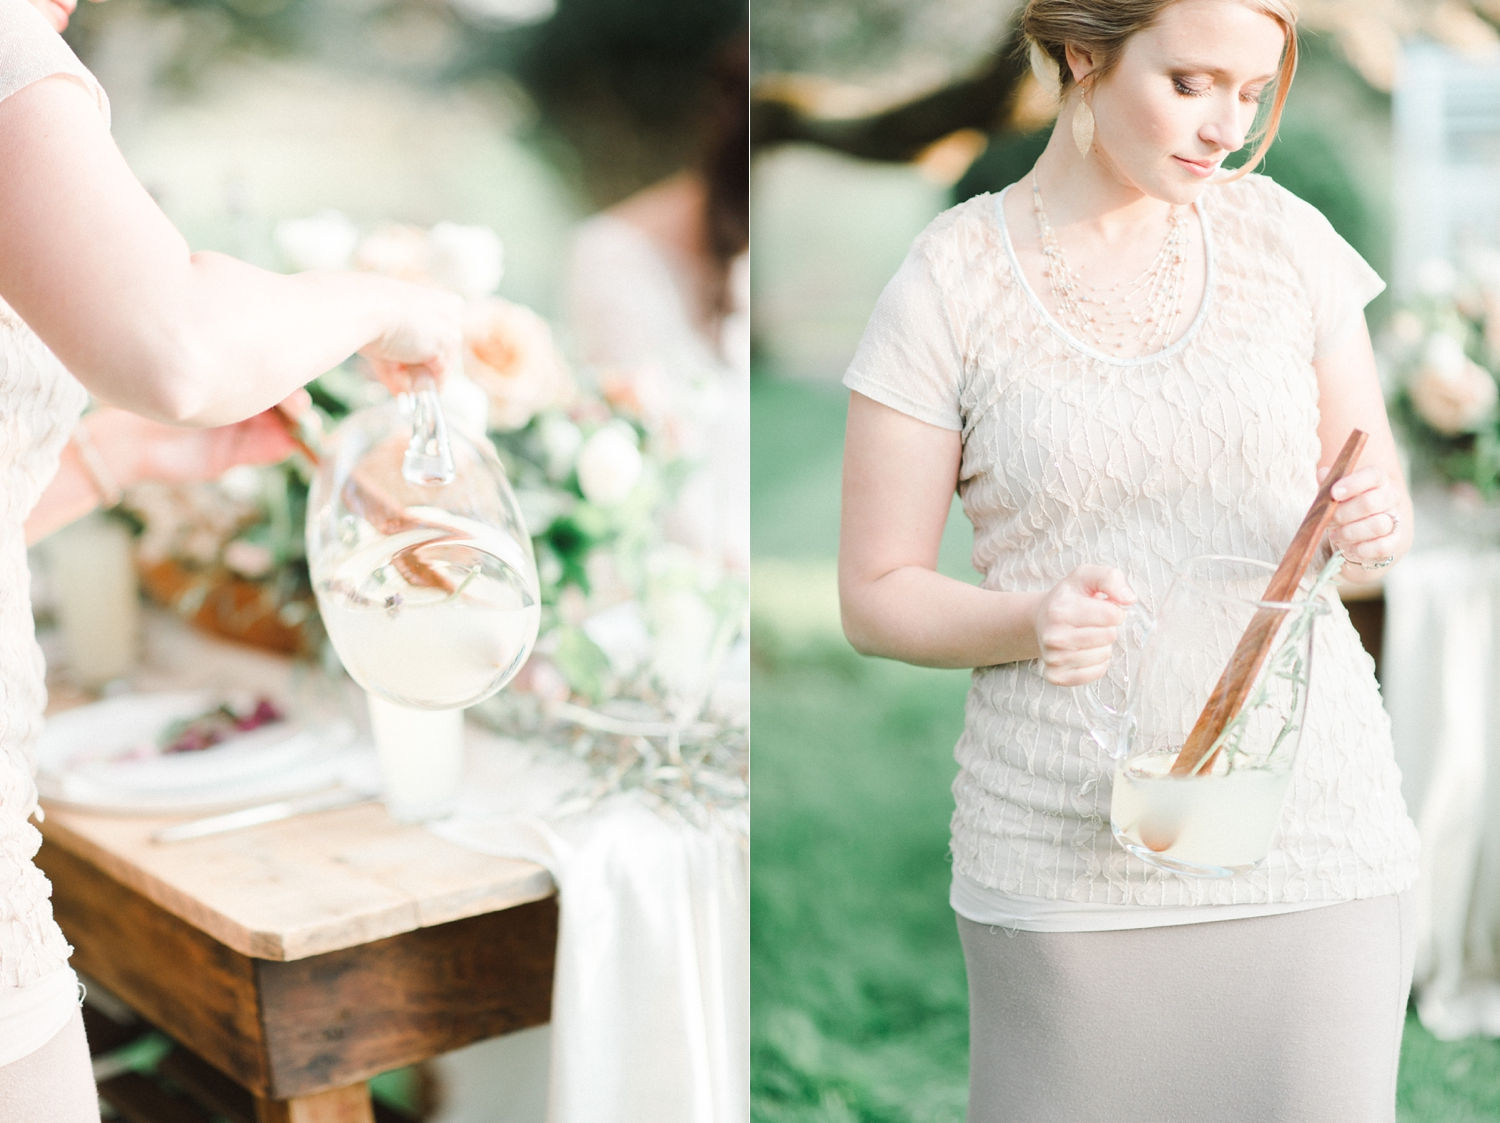 cottage_hill_herb_inspired_wedding_Oatlands_VA_wedding_Photographer_0061.jpg